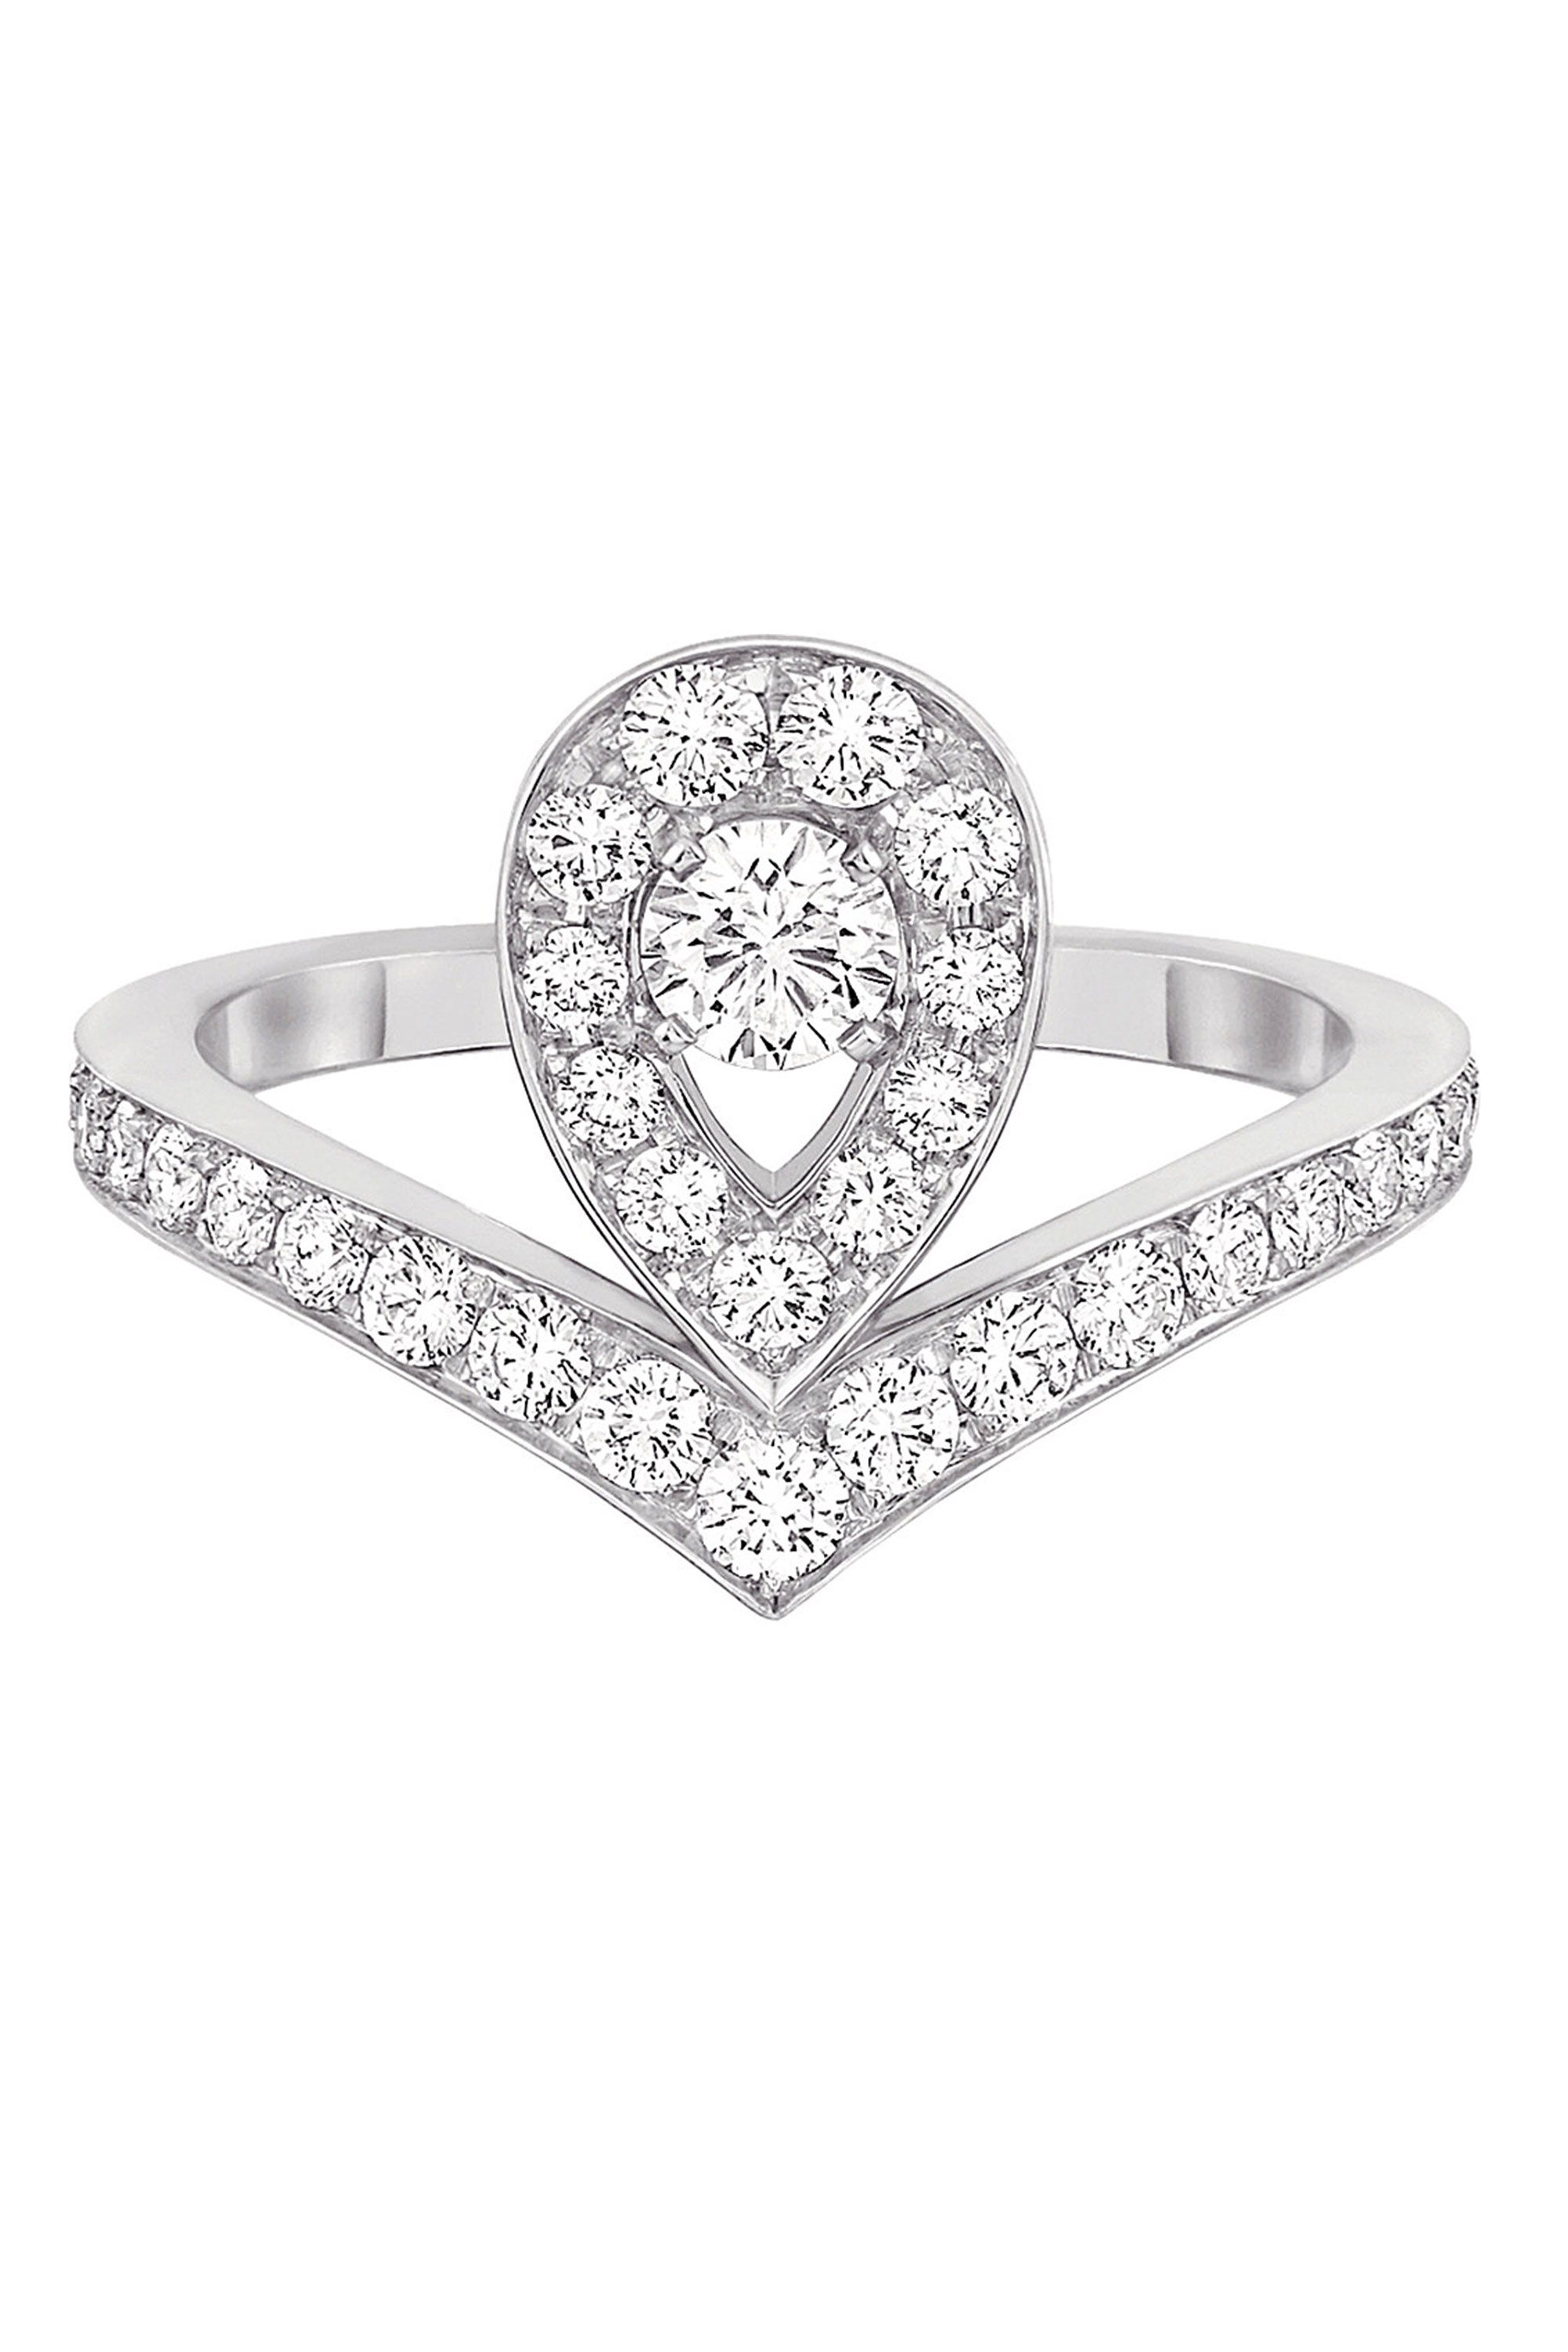 Our Guide To The Best Engagement Rings Designer And Classic: Wedding Ring Art Deco Adver At Reisefeber.org